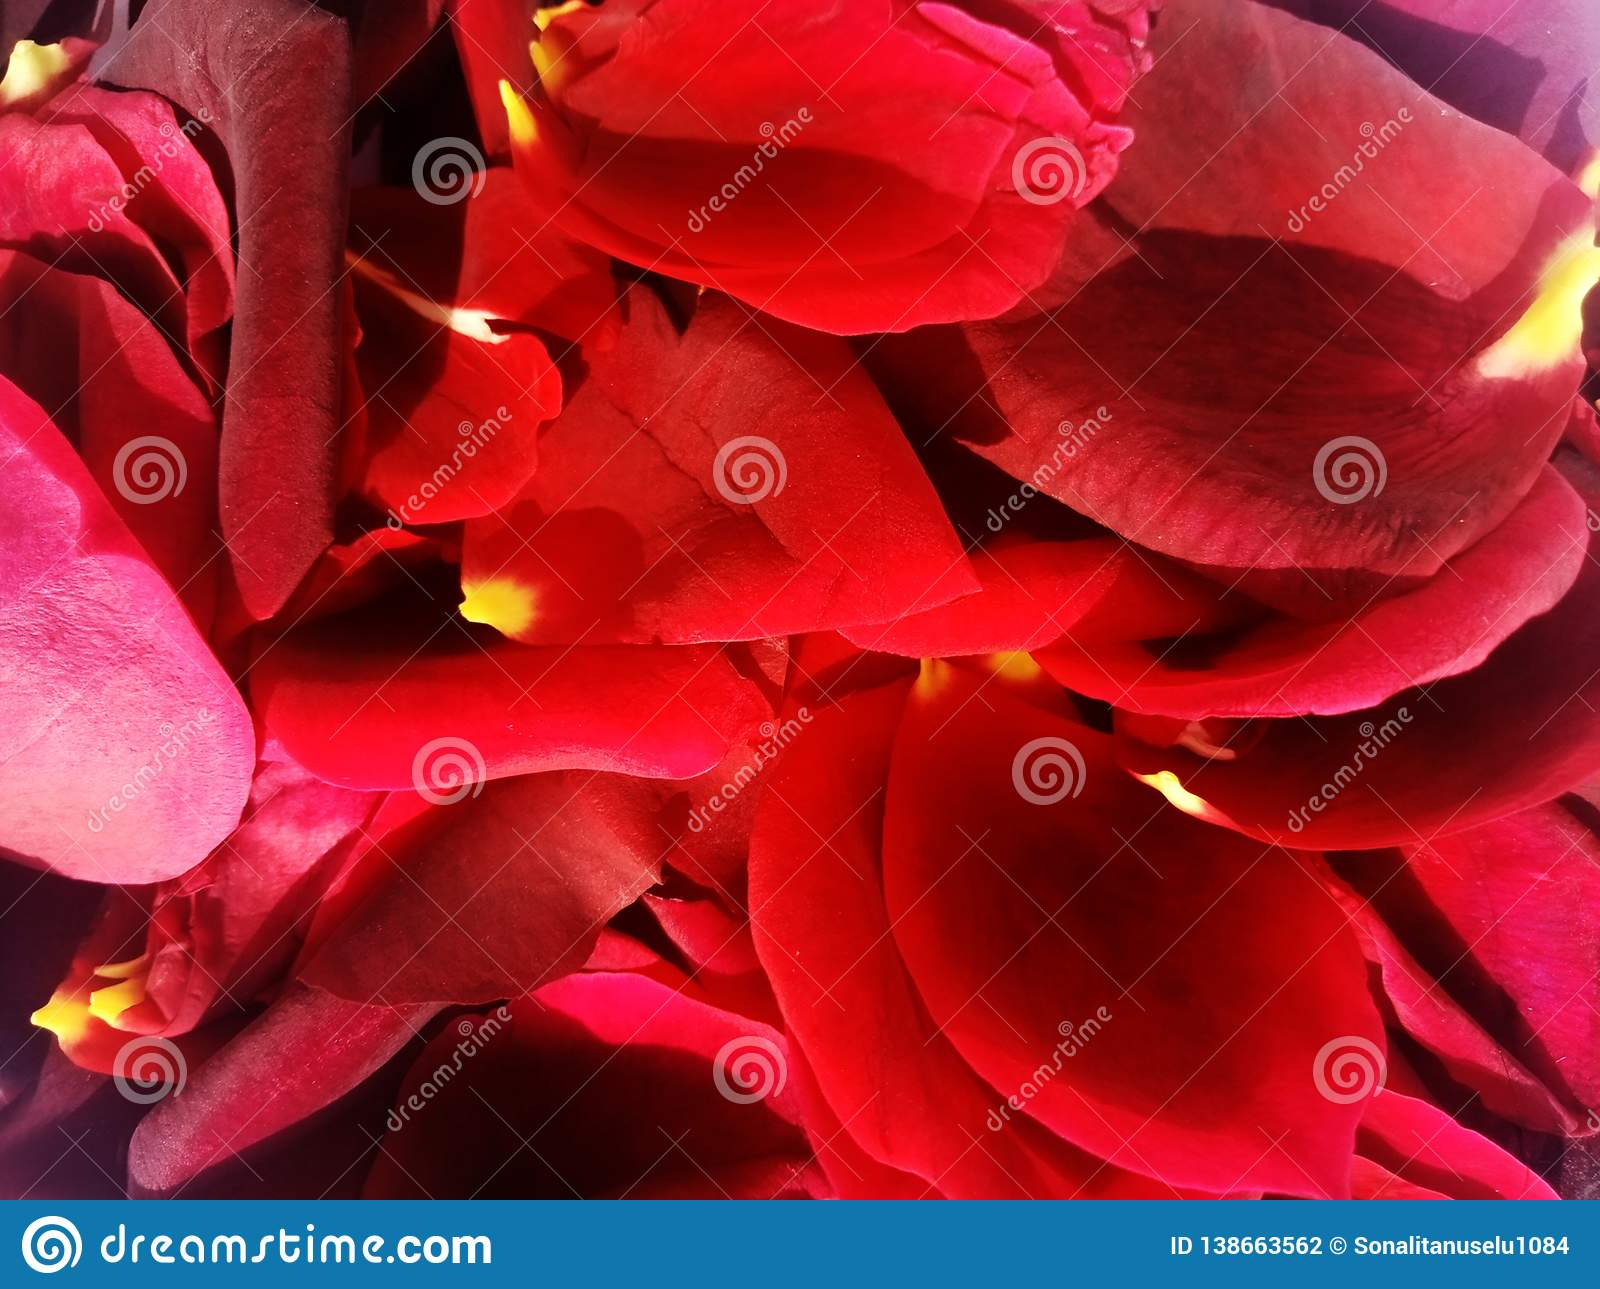 Rose rose petals with textured background.